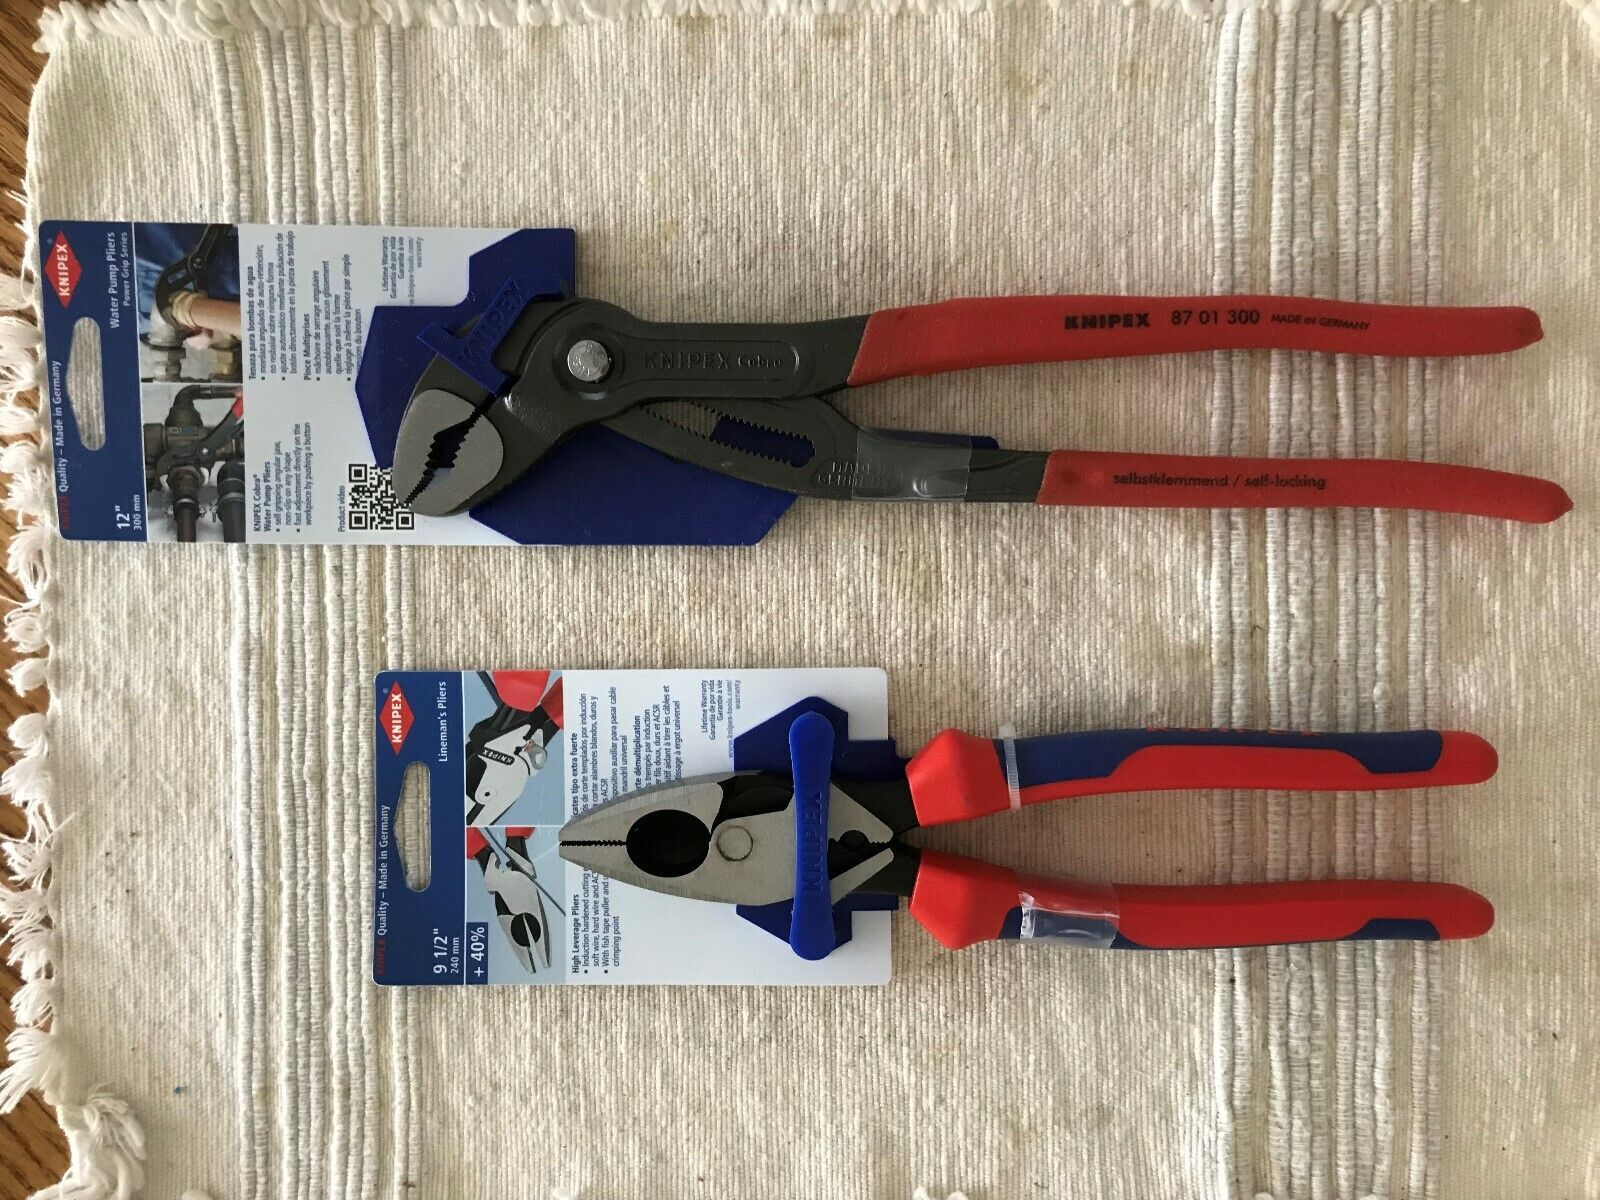 KNIPEX Cobra and Lineman's Pliers